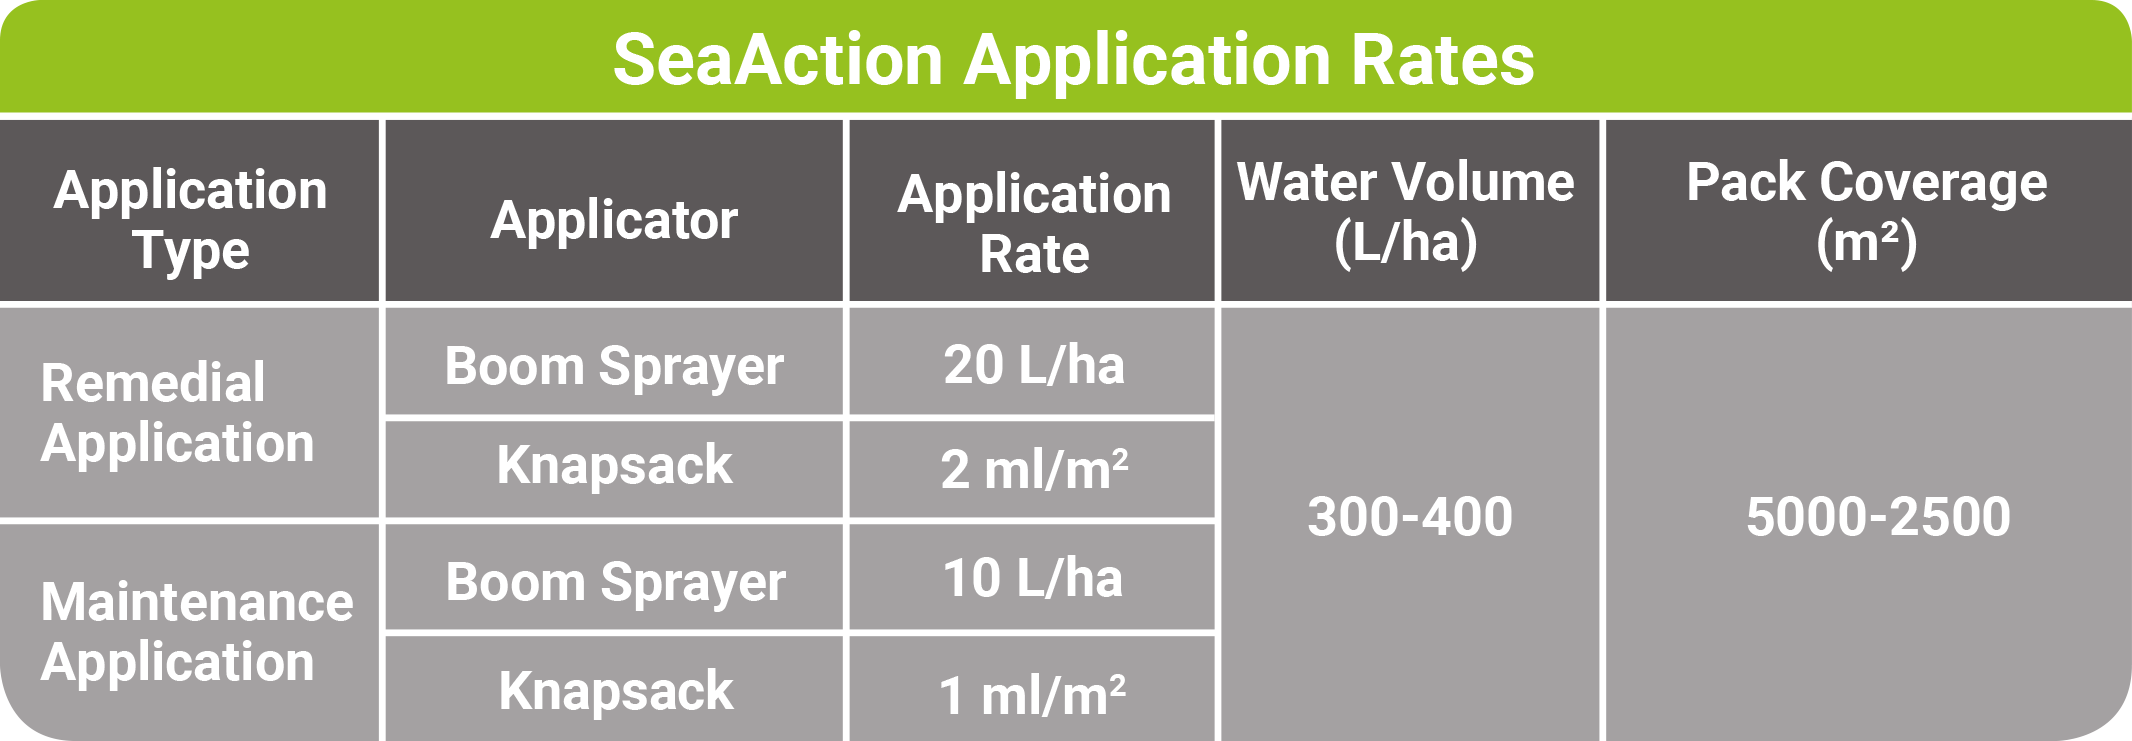 SeaAction Seaweed Application Rates - available from Pitchcare.com